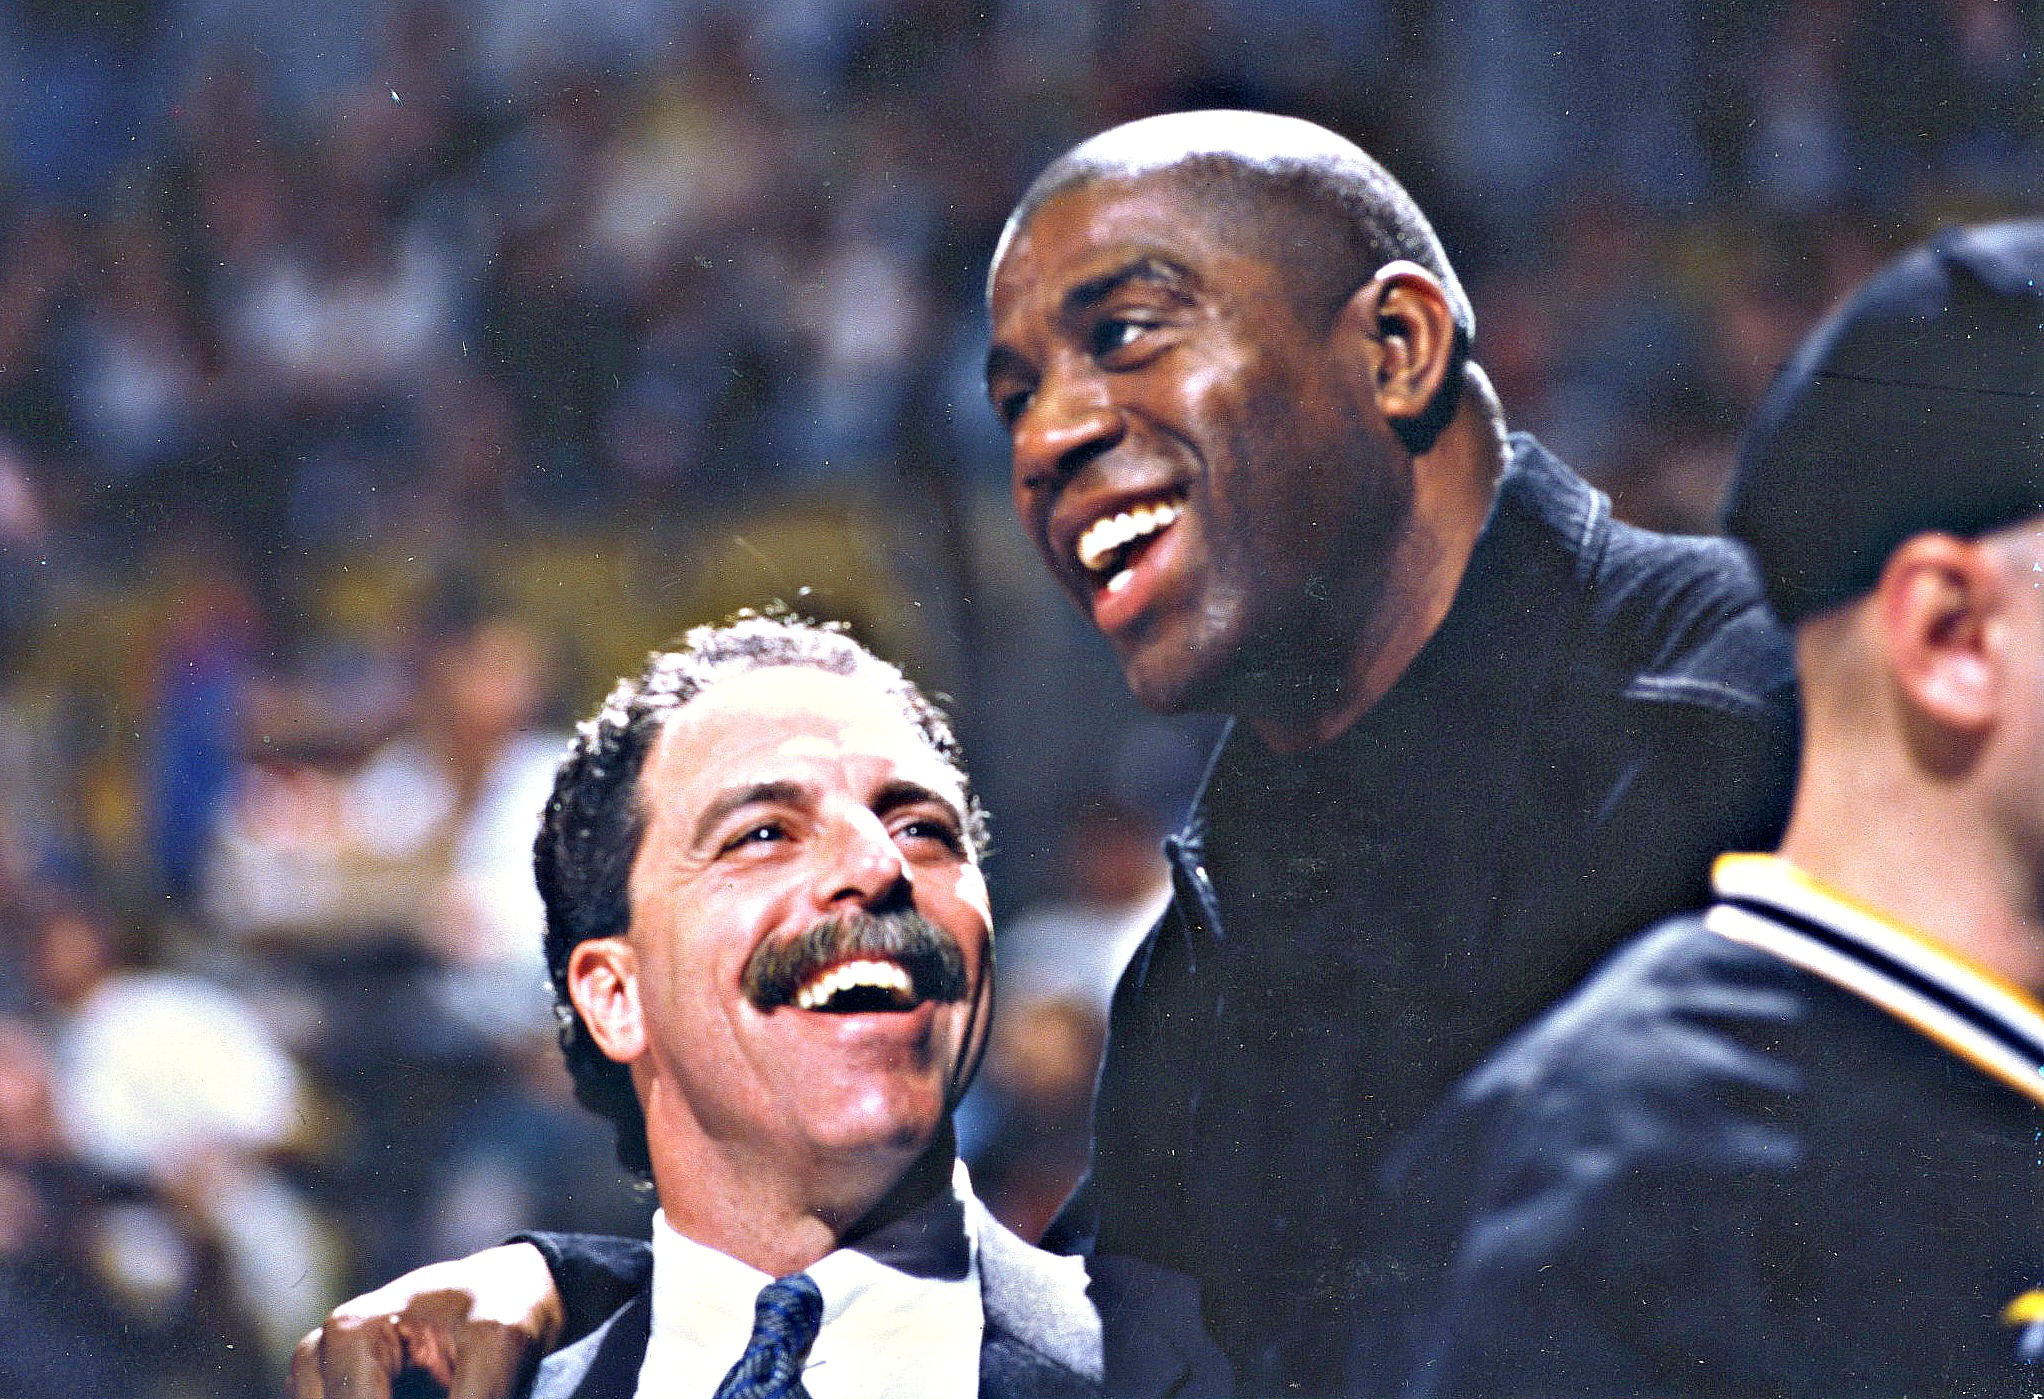 Vitti and Magic Johnson after Johnson retired from the Lakers. Shortly before Vitti broke the news to the team that Magic was infected with the HIV/AIDS virus Magic told him that he was going to beat the virus and was going to do something great with it. 24 years later he is still functioning at a high level and has dedicated himself to AIDS education around the world. Courtesy Gary Vitti collection